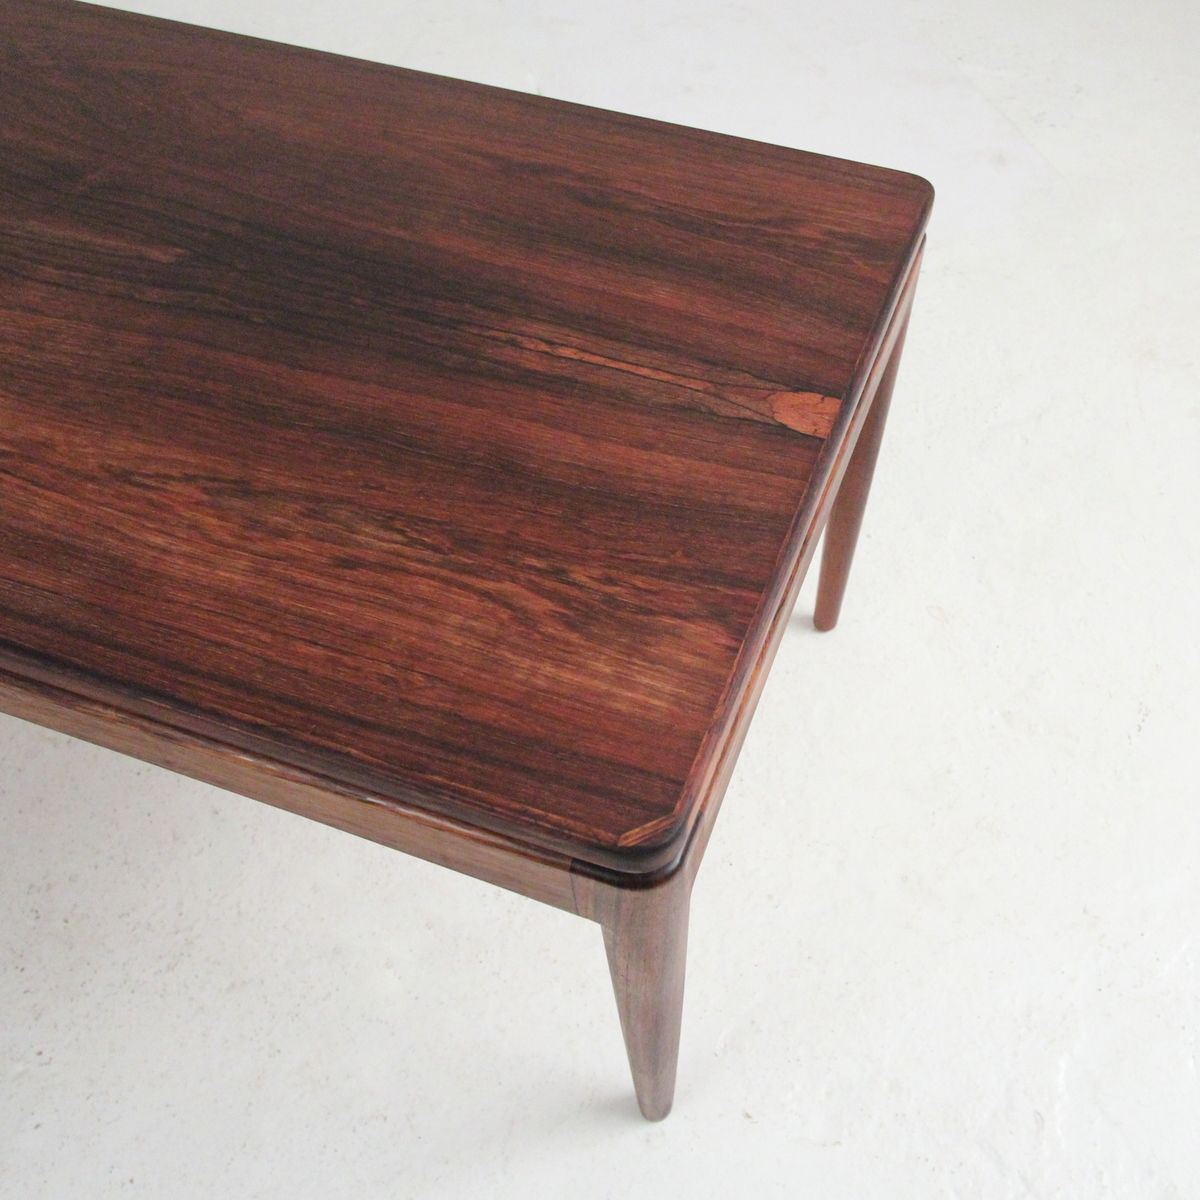 Rosewood Coffee Table 1960s for sale at Pamono